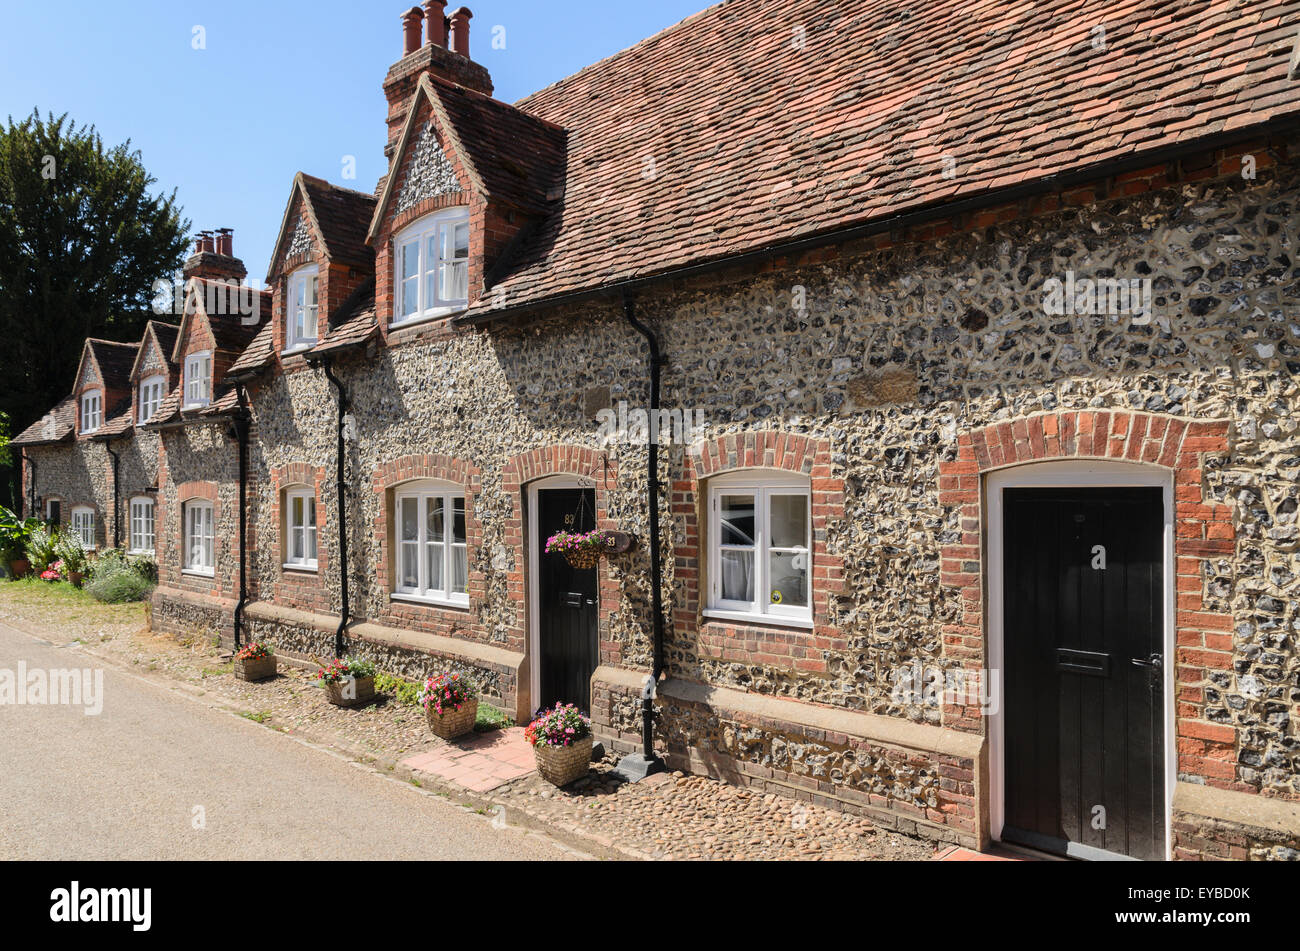 A row of cottages at Coombe Terrace, Hambleden, Buckinghamshire, England, UK. - Stock Image